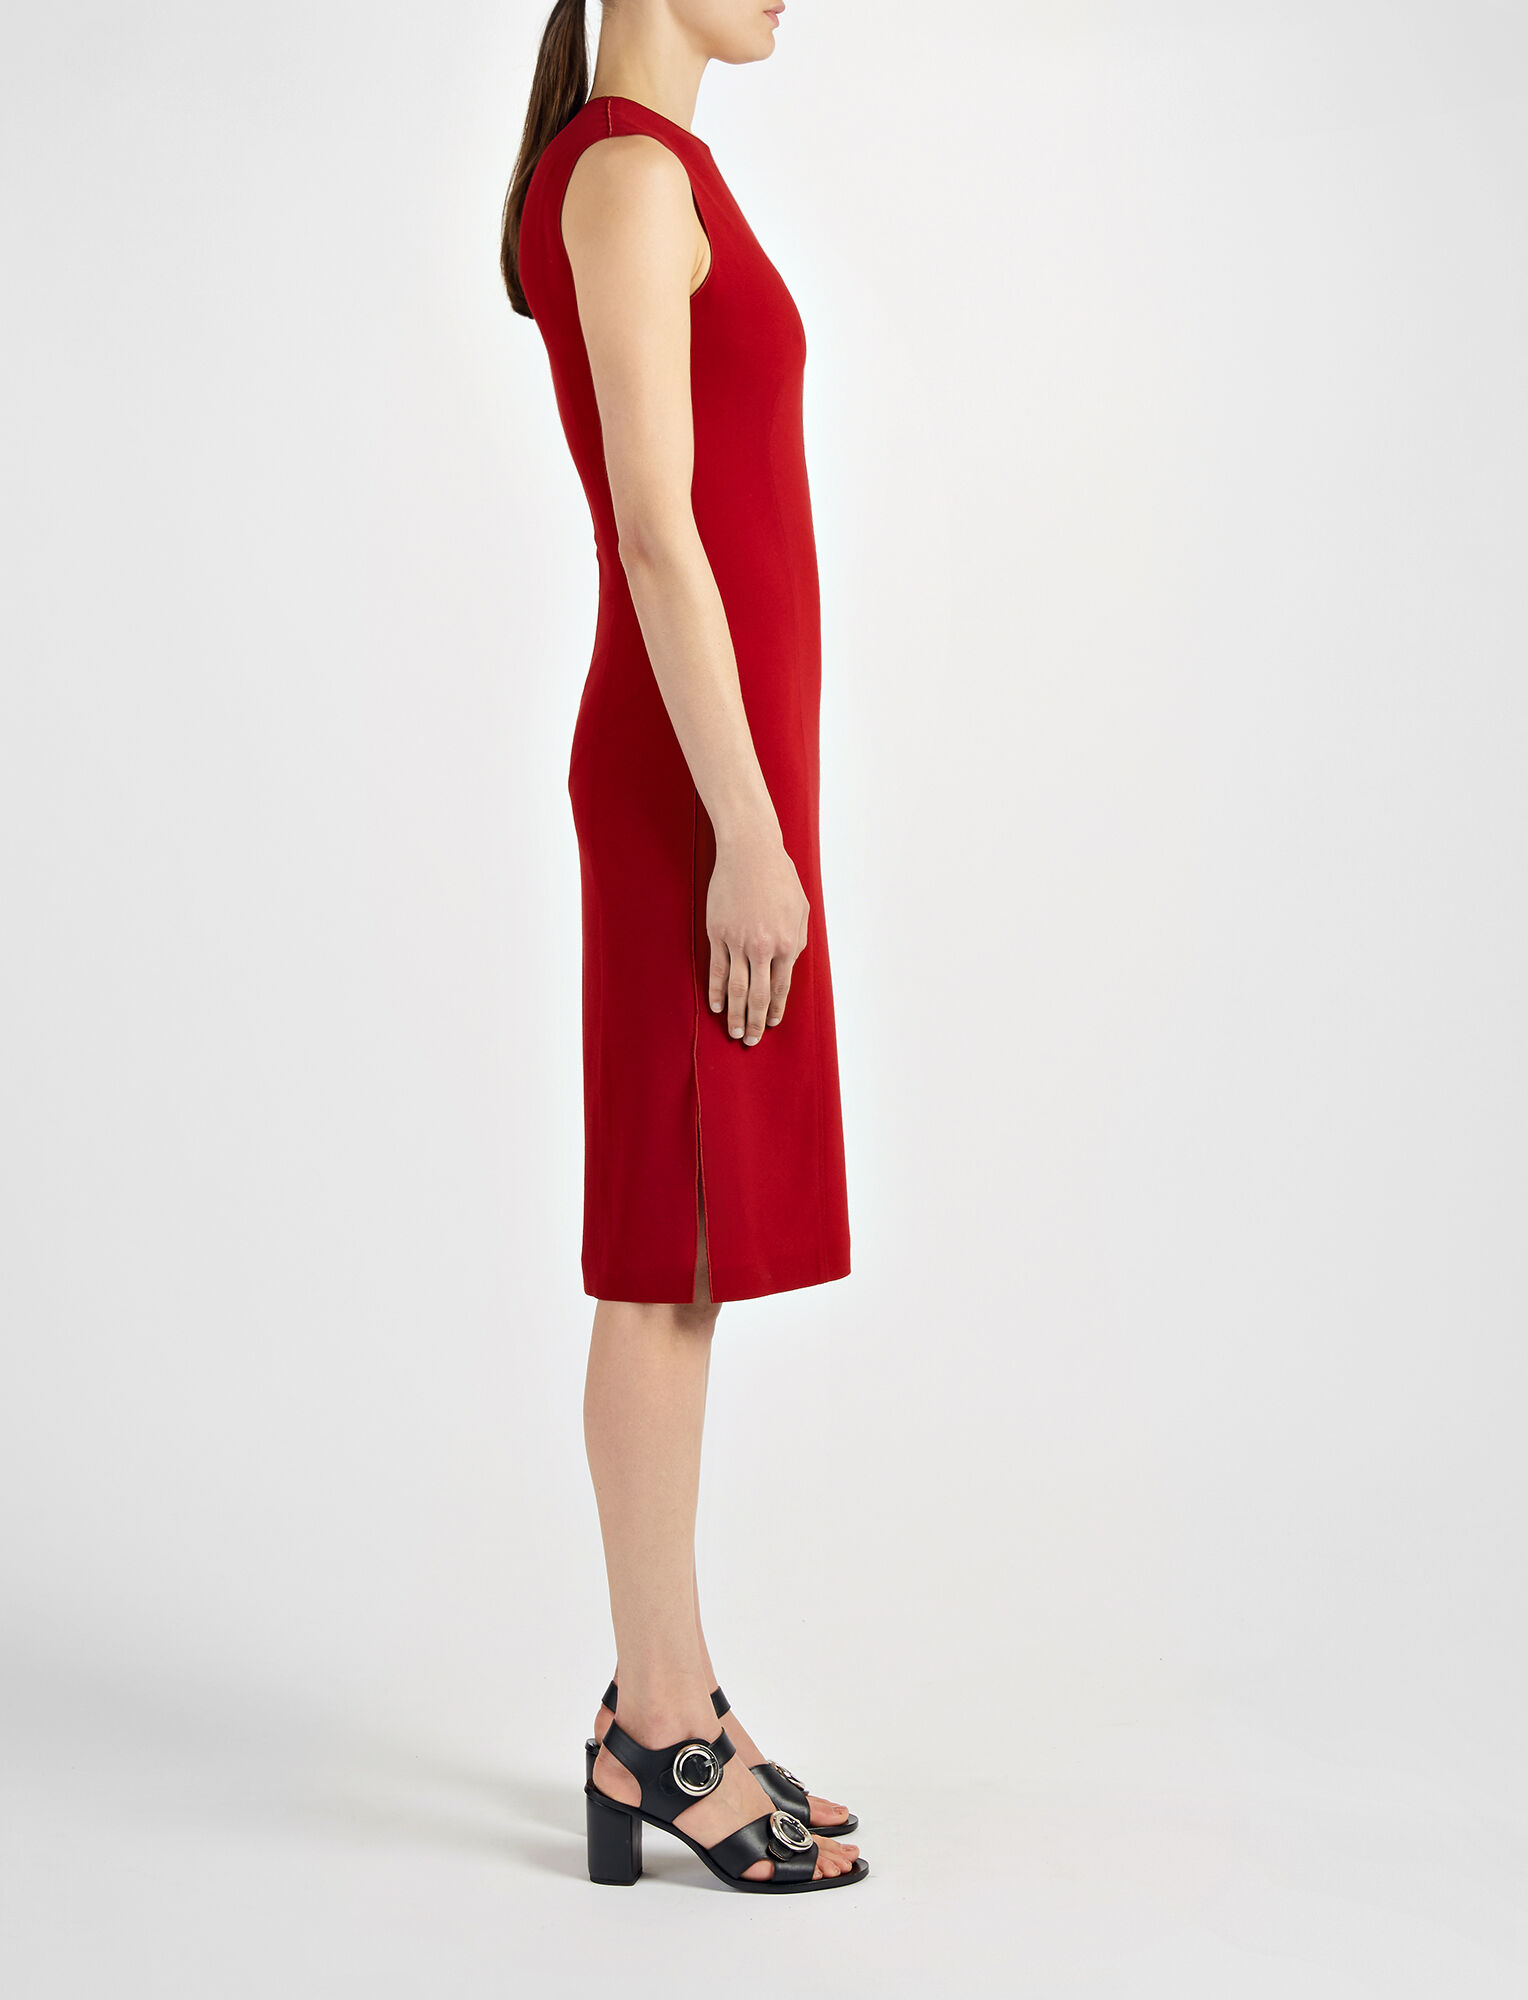 Joseph, Crepe Stretch Sadie Dress, in OXBLOOD